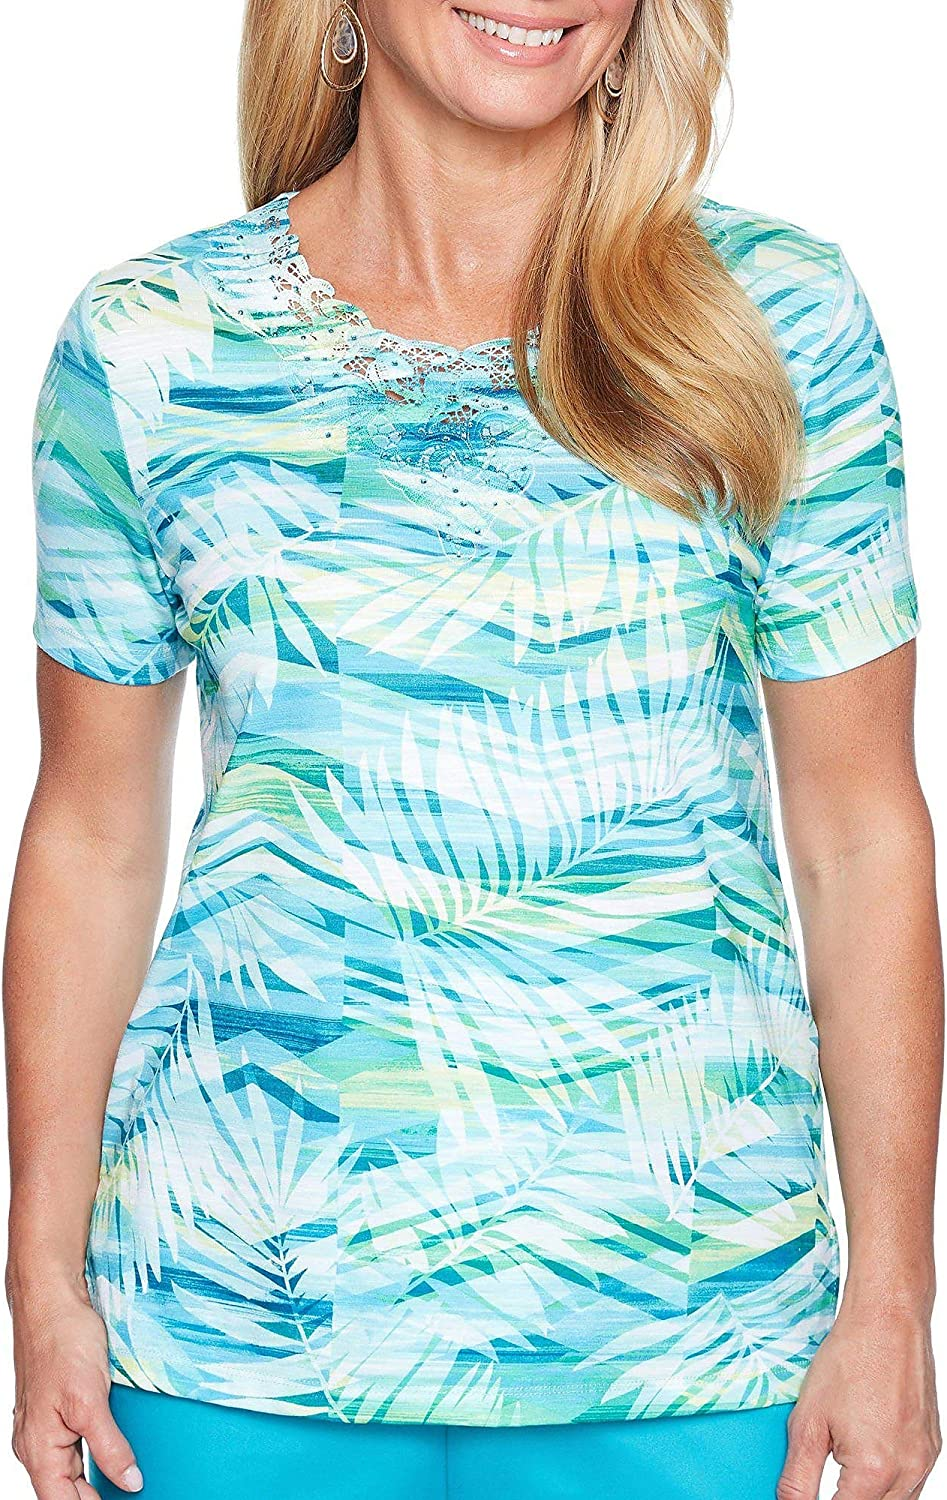 Alfred Dunner Women's Scottsdale Abstract Leaf Top